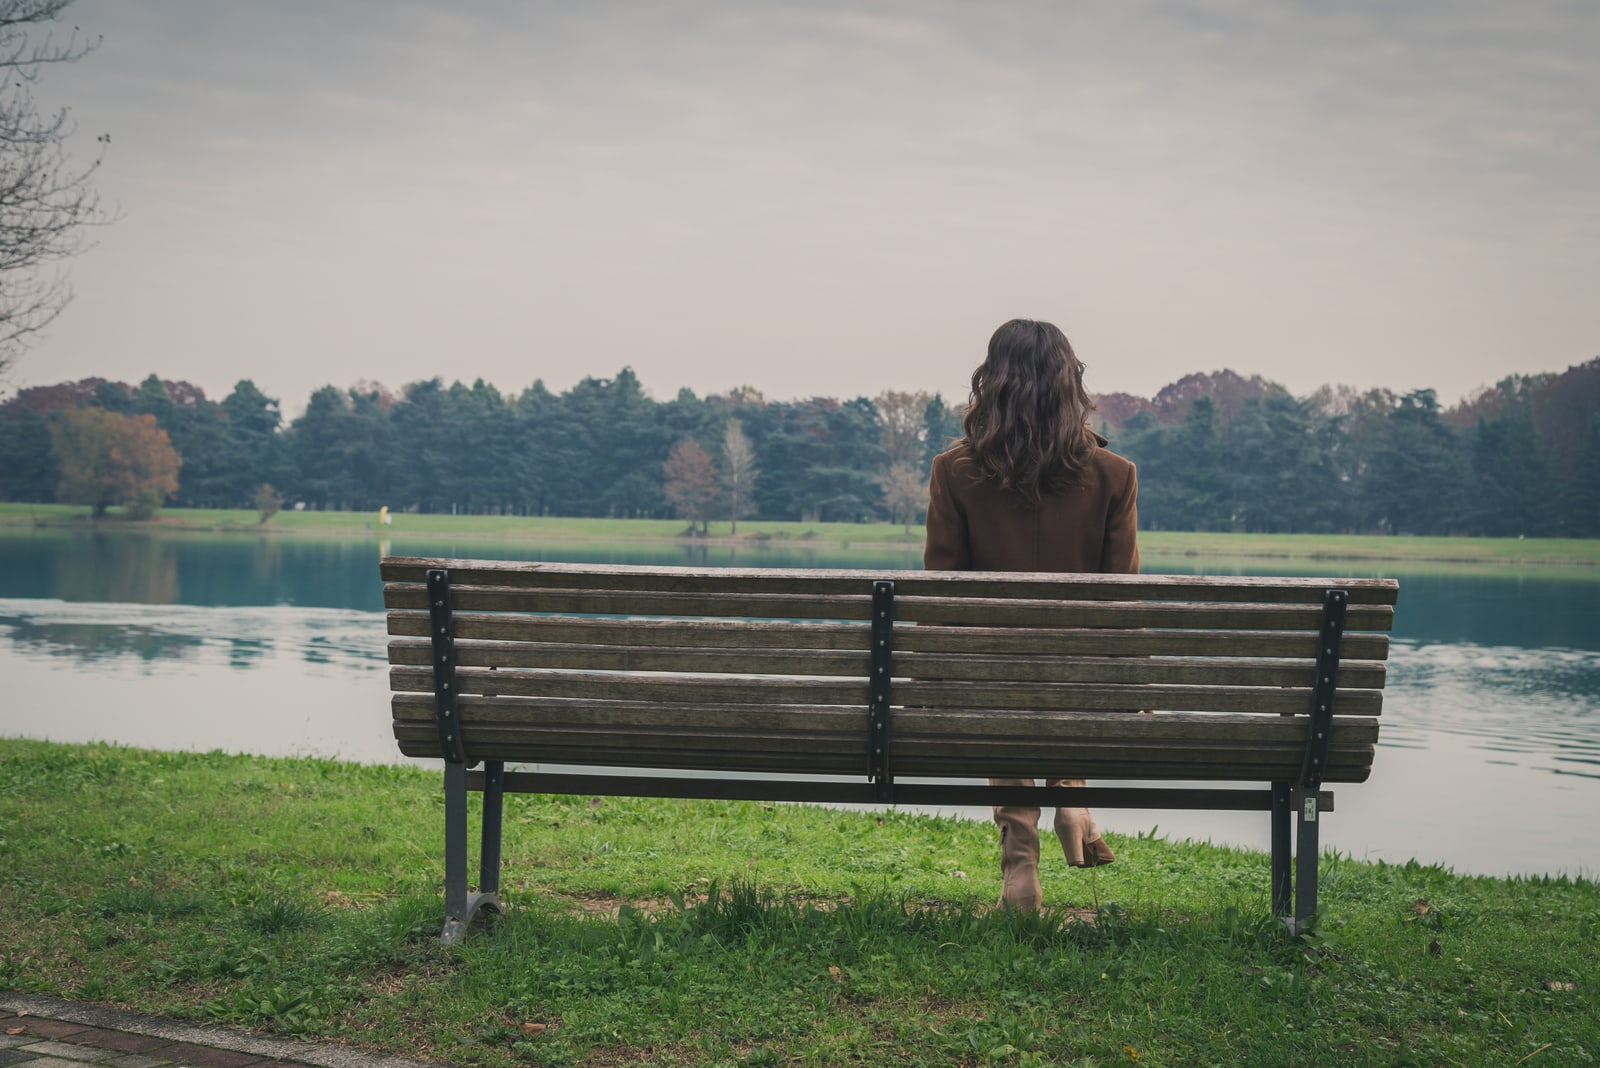 the woman is sitting on a bench